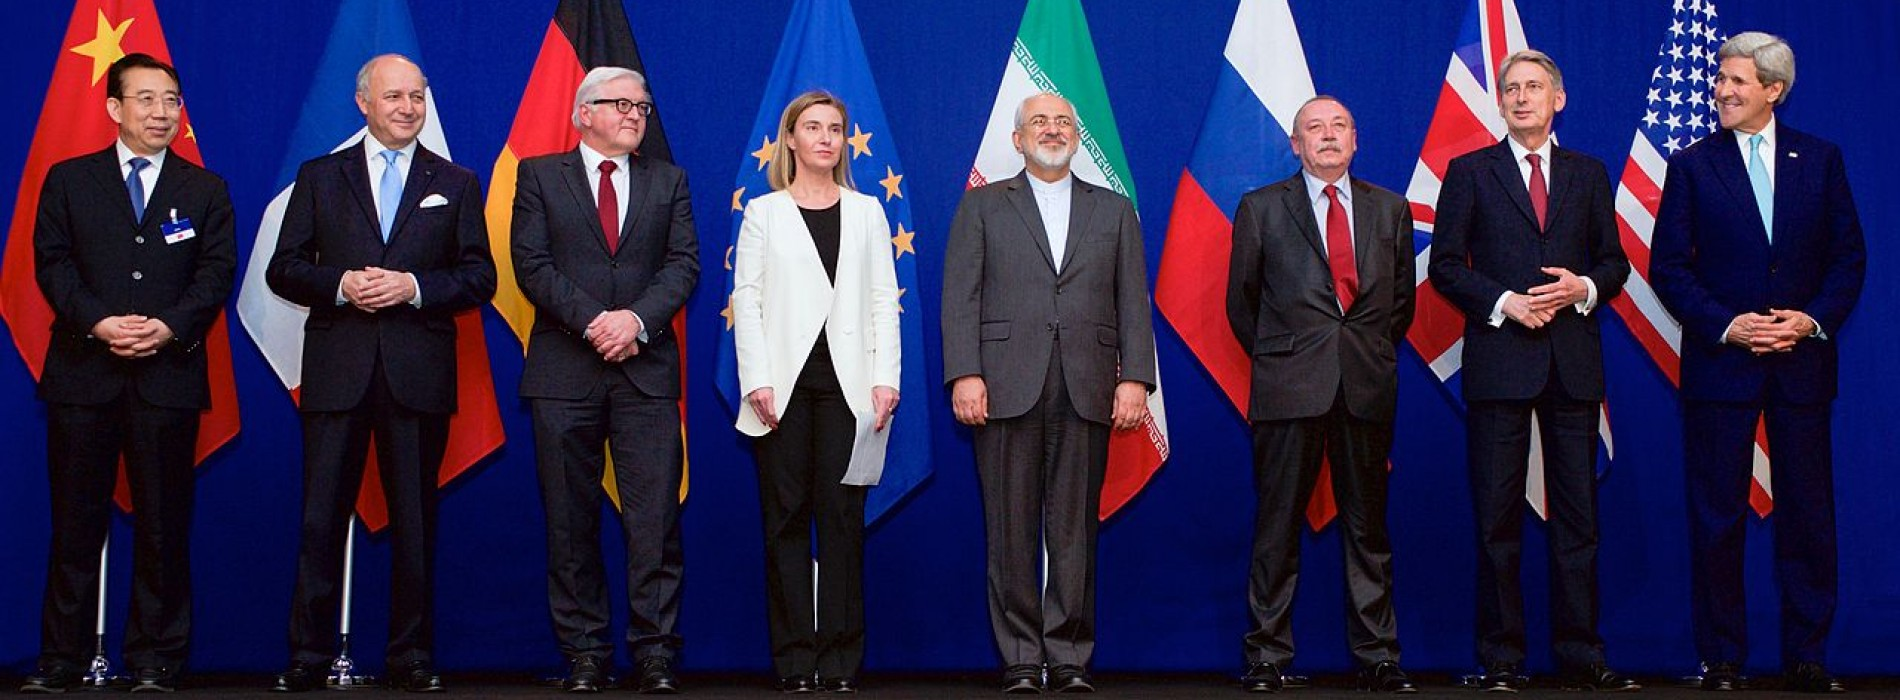 The Iran deal is political, and that's OK